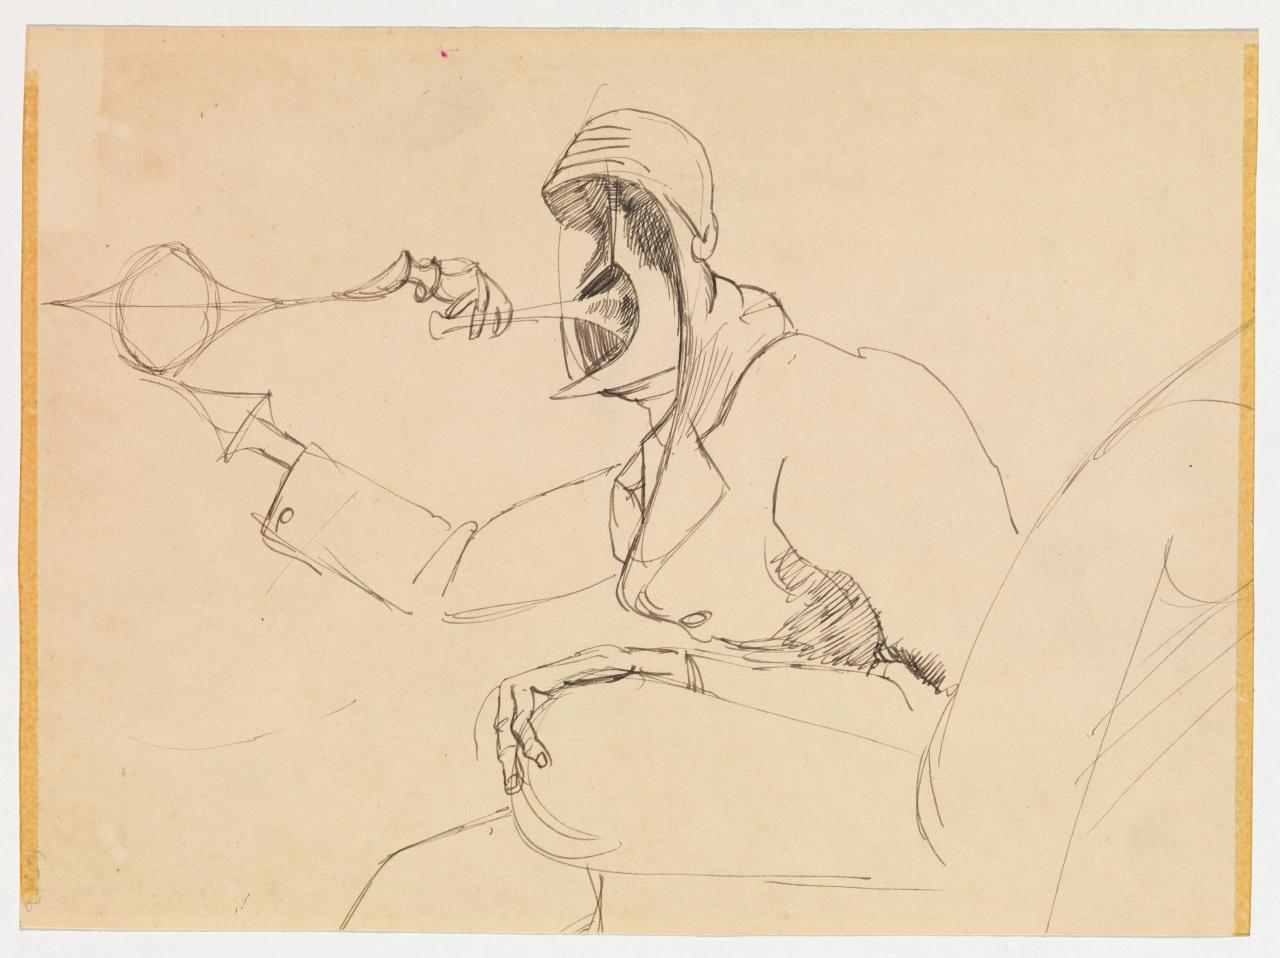 Untitled (Seated figure with abstract face)